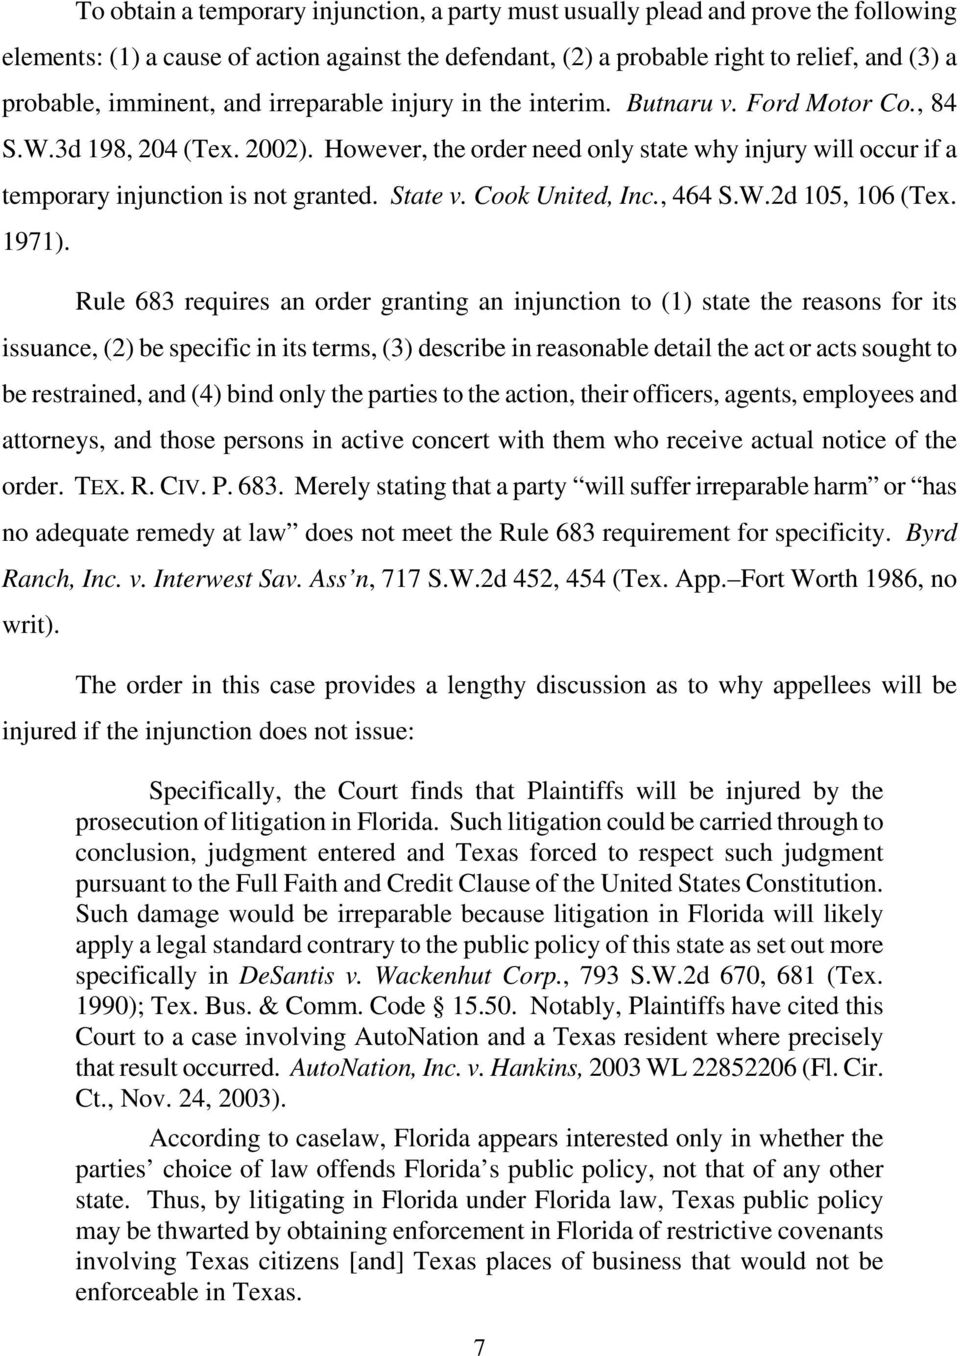 However, the order need only state why injury will occur if a temporary injunction is not granted. State v. Cook United, Inc., 464 S.W.2d 105, 106 (Tex. 1971).